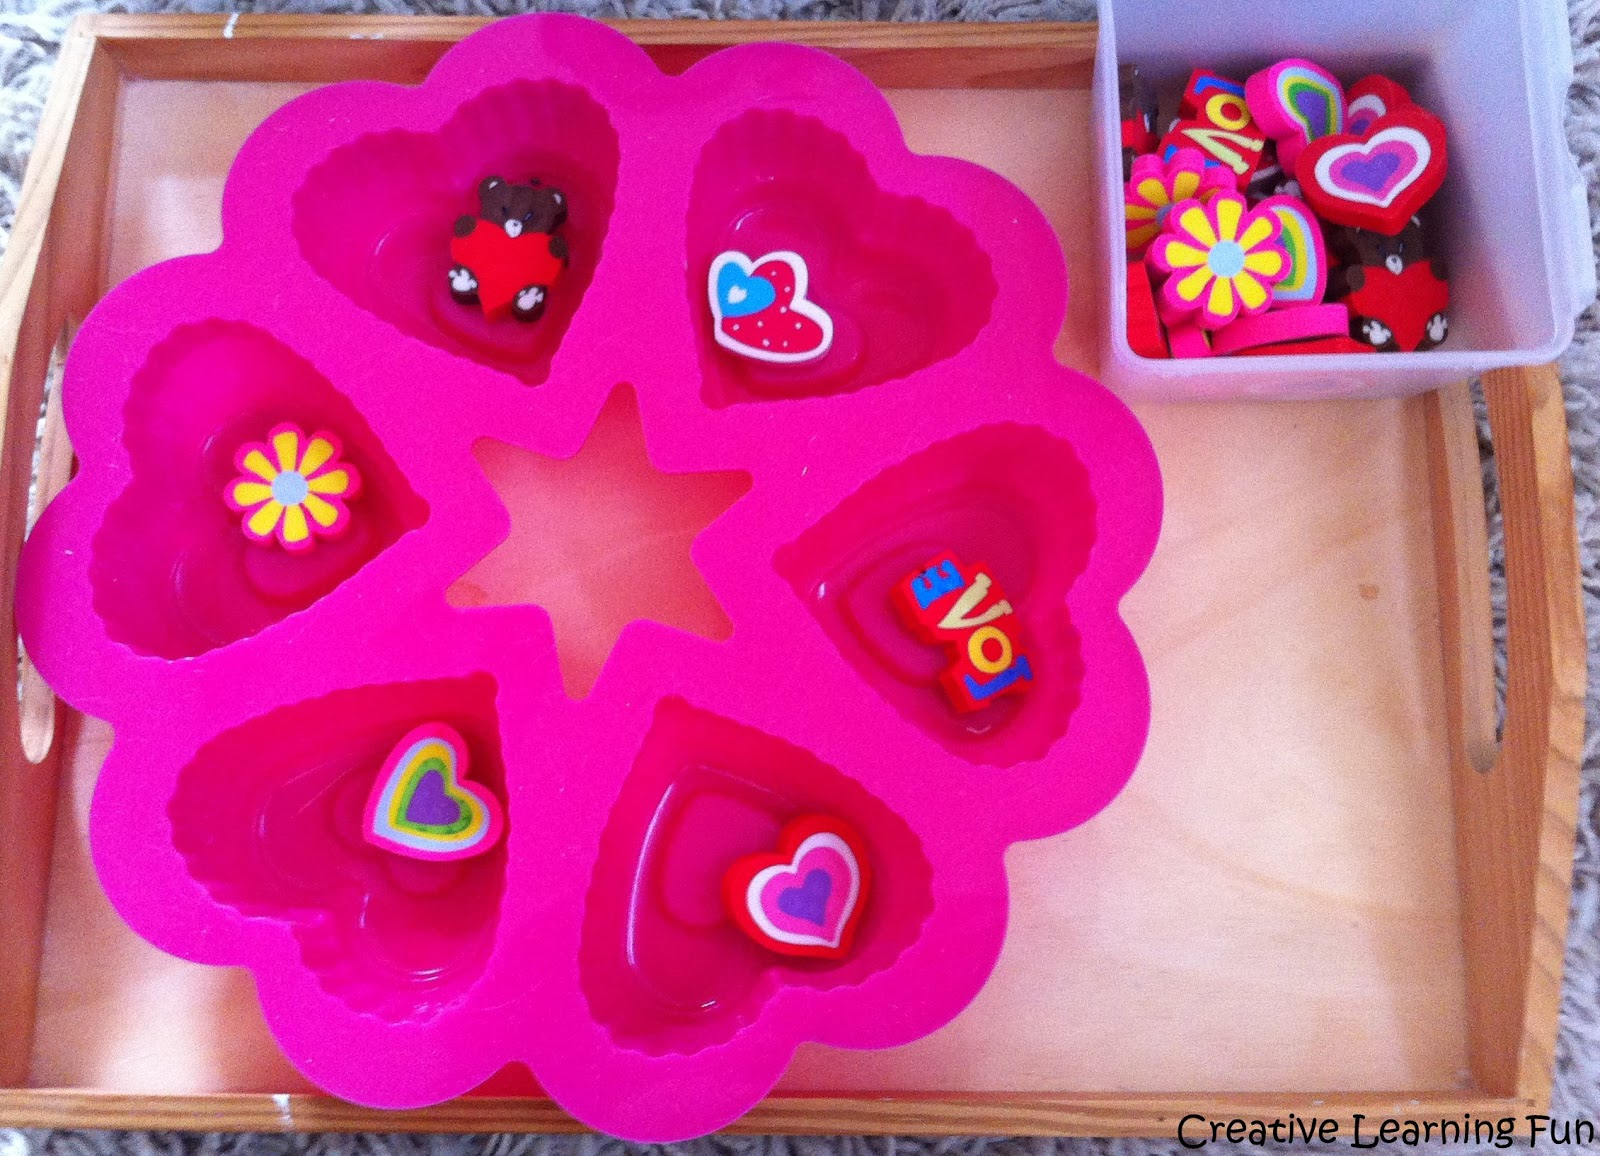 TEACCH Containers http://creativelearningfun.blogspot.com/2013/02/teacch-task-valentine-matching-for.html